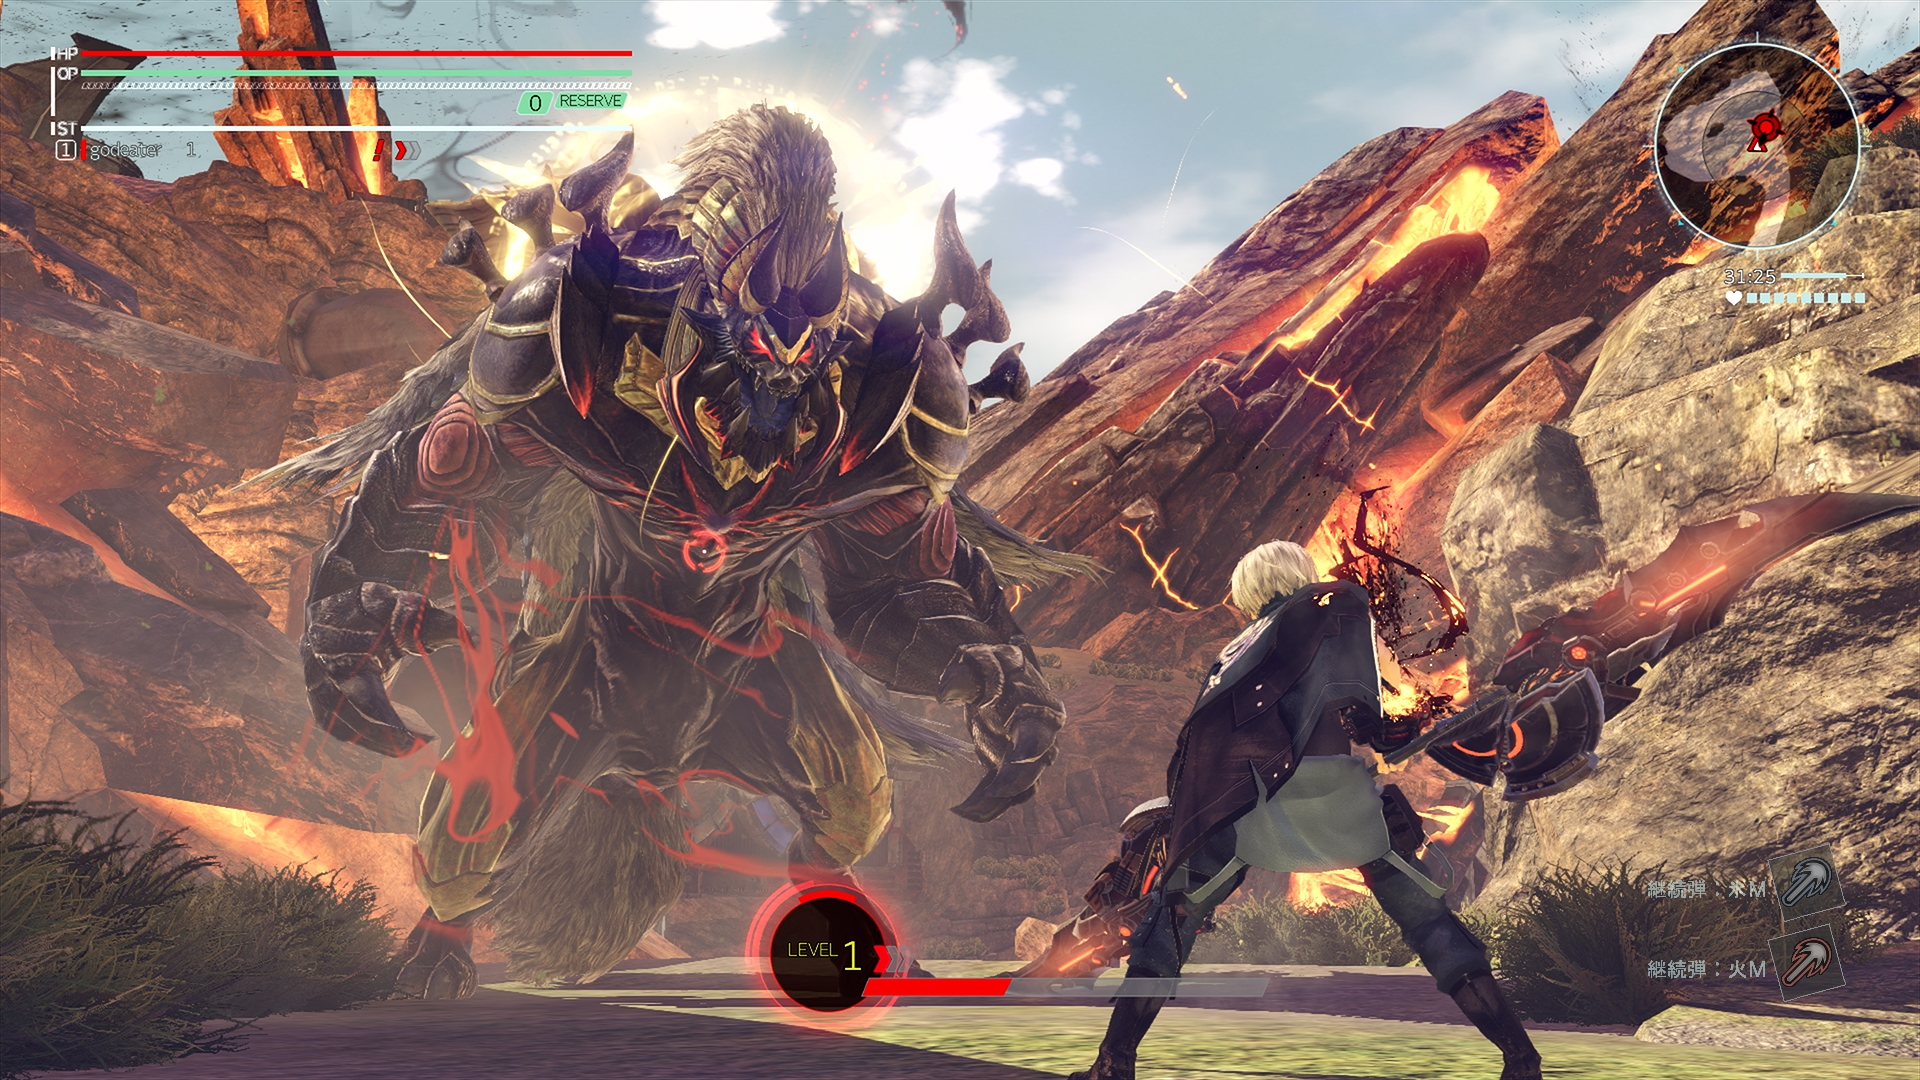 Godeater32